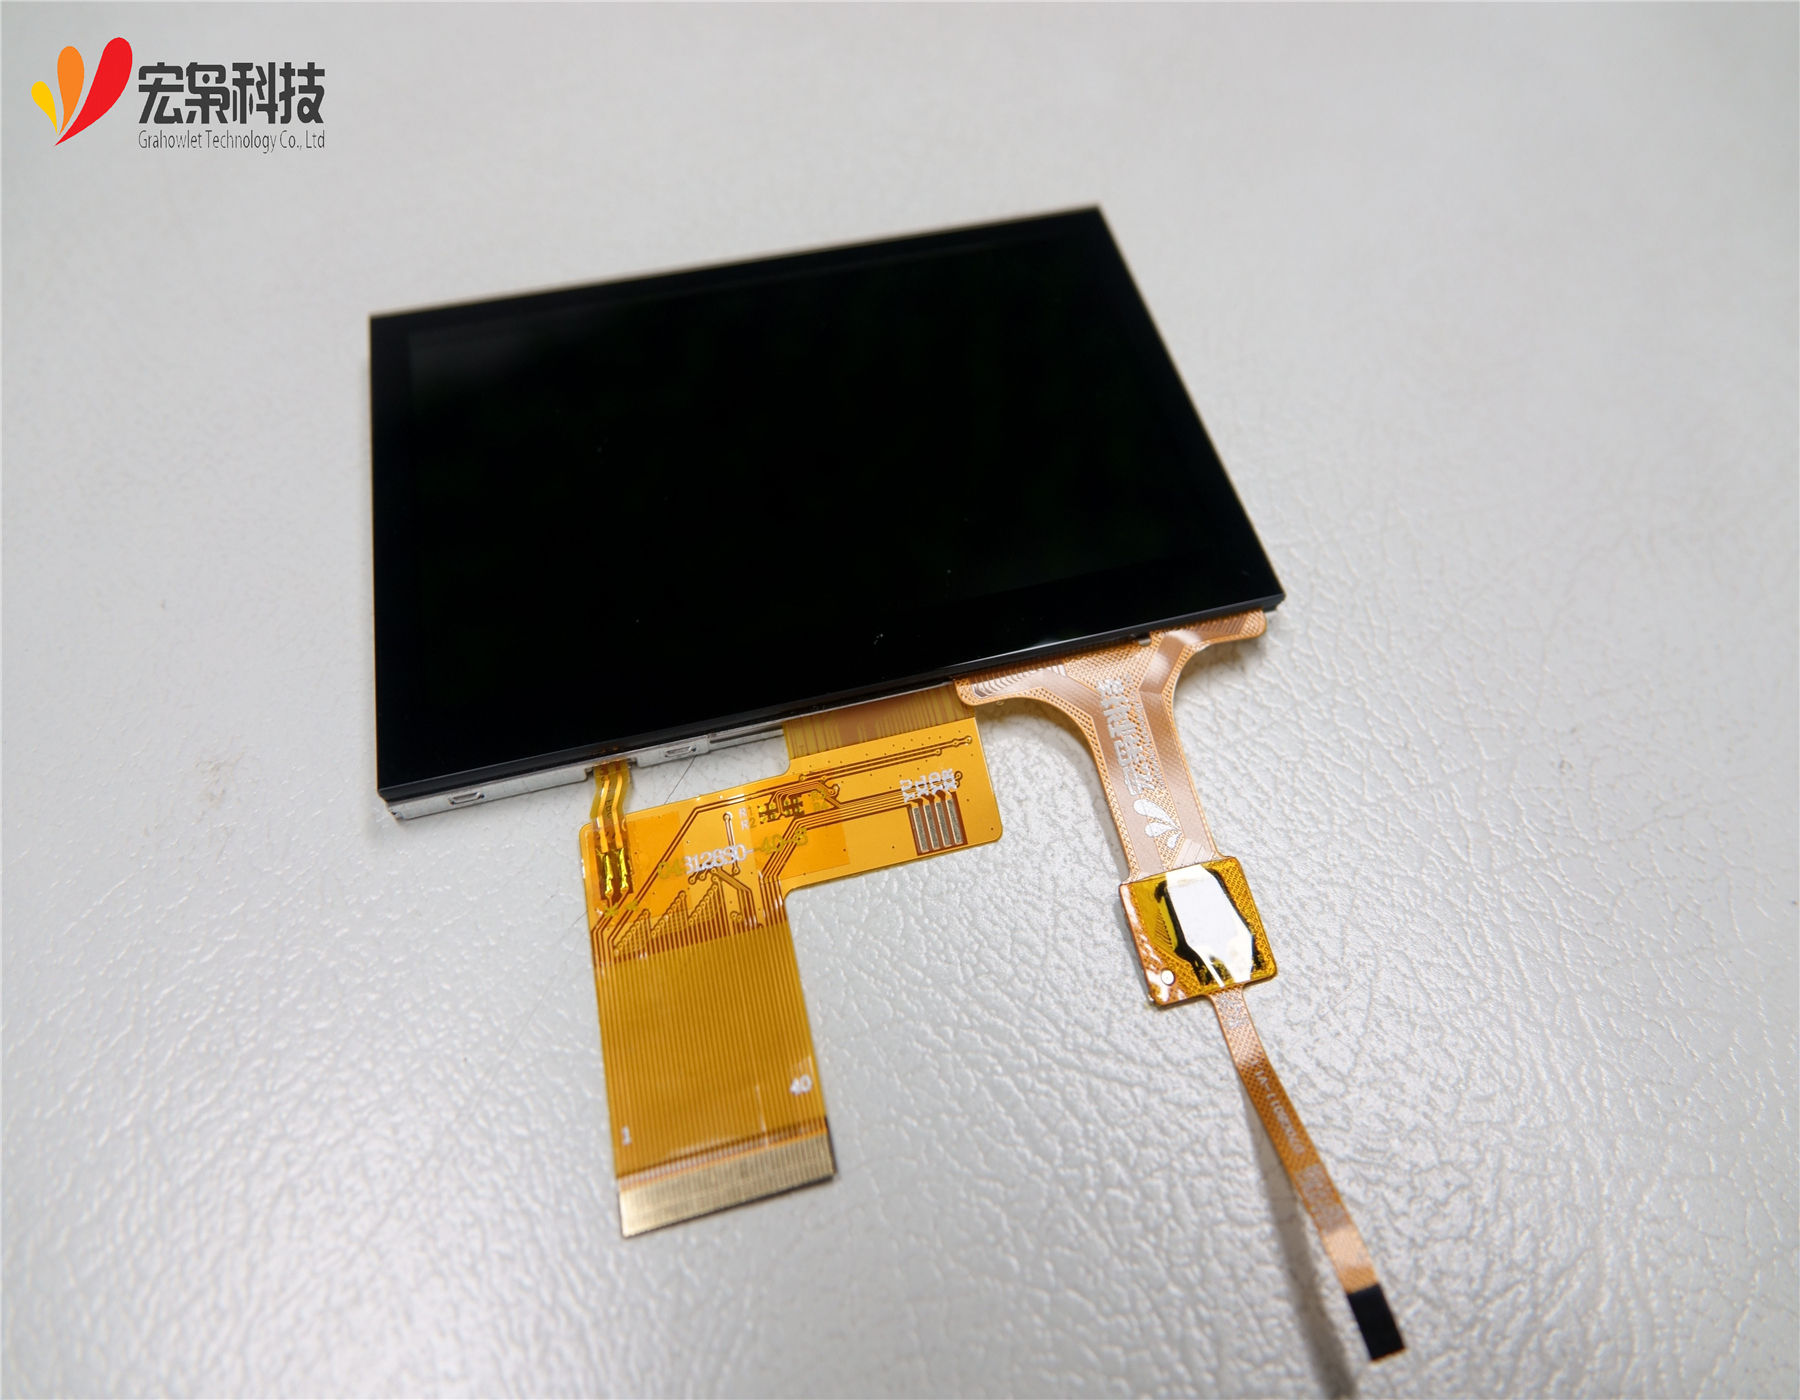 Wasserdichte USB/IIC IPS 480*800 1,5, 2, 2,4, 3, 3,2, 4, 4,3 zoll tft lcd-display-modul mit kleiner kapazitiver touch screen panel